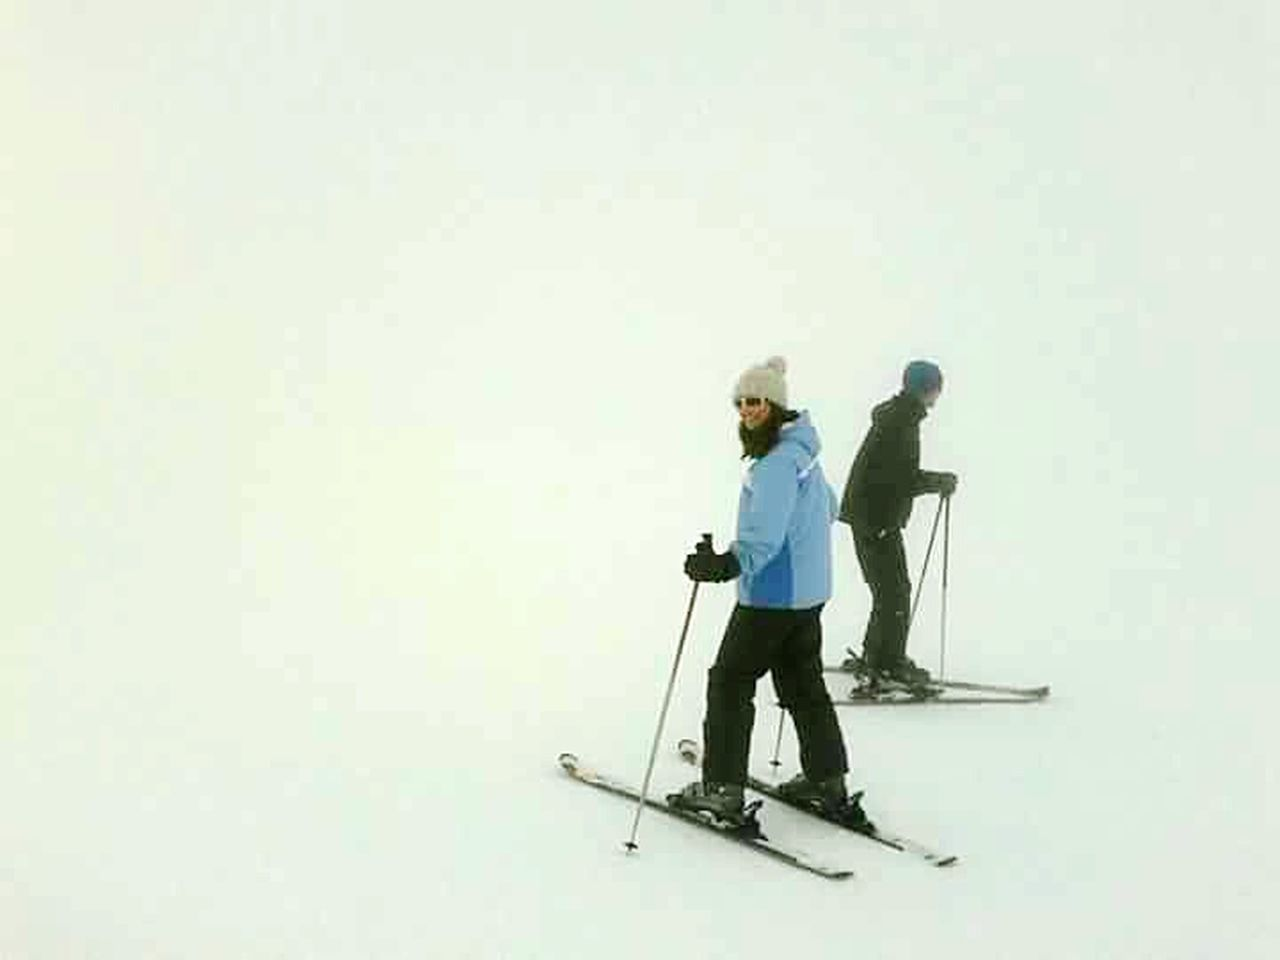 Foggy skiing in Sierra Nevada Fog Skiing Which Way To Go? Lost Floating Sierra Nevada